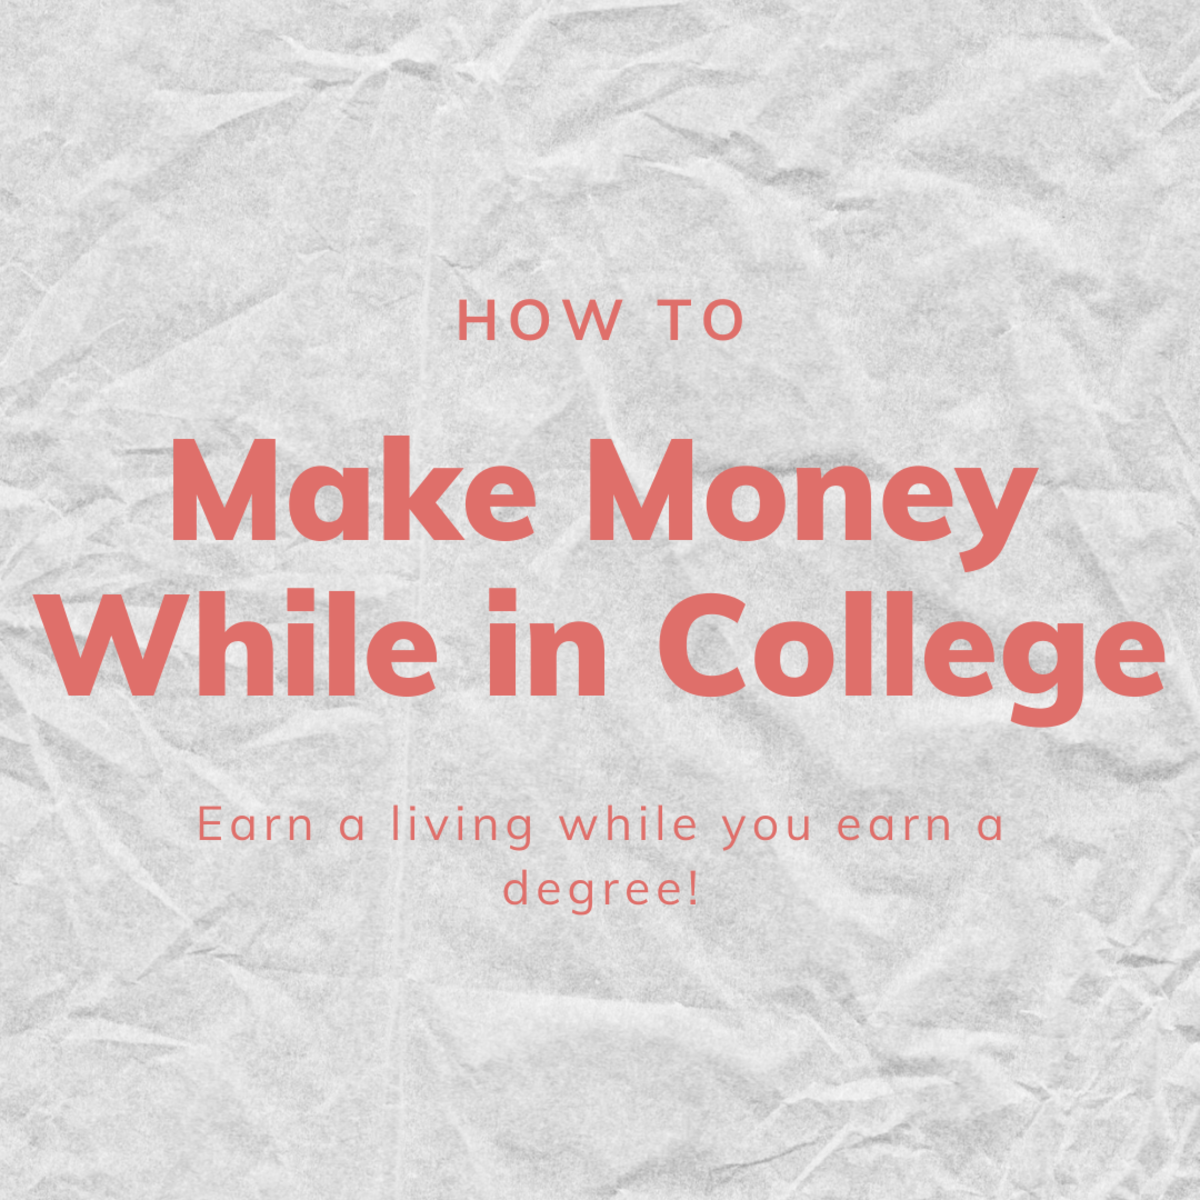 How to Make Money While You're in College